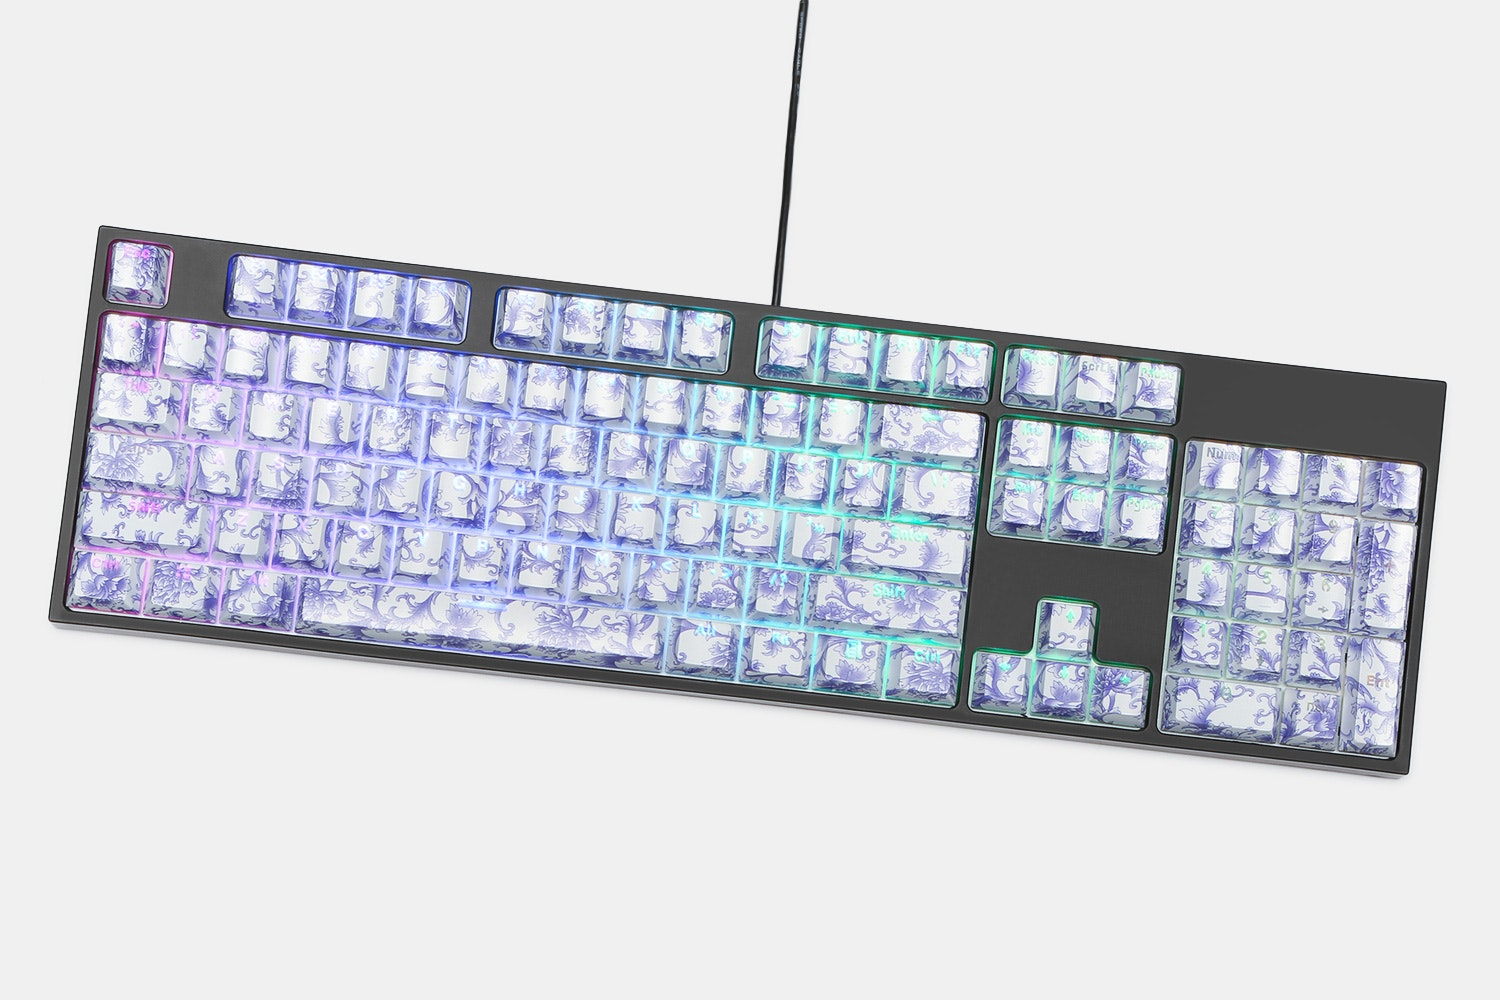 Porcelain ABS Shine-Through 104-Keycap Set